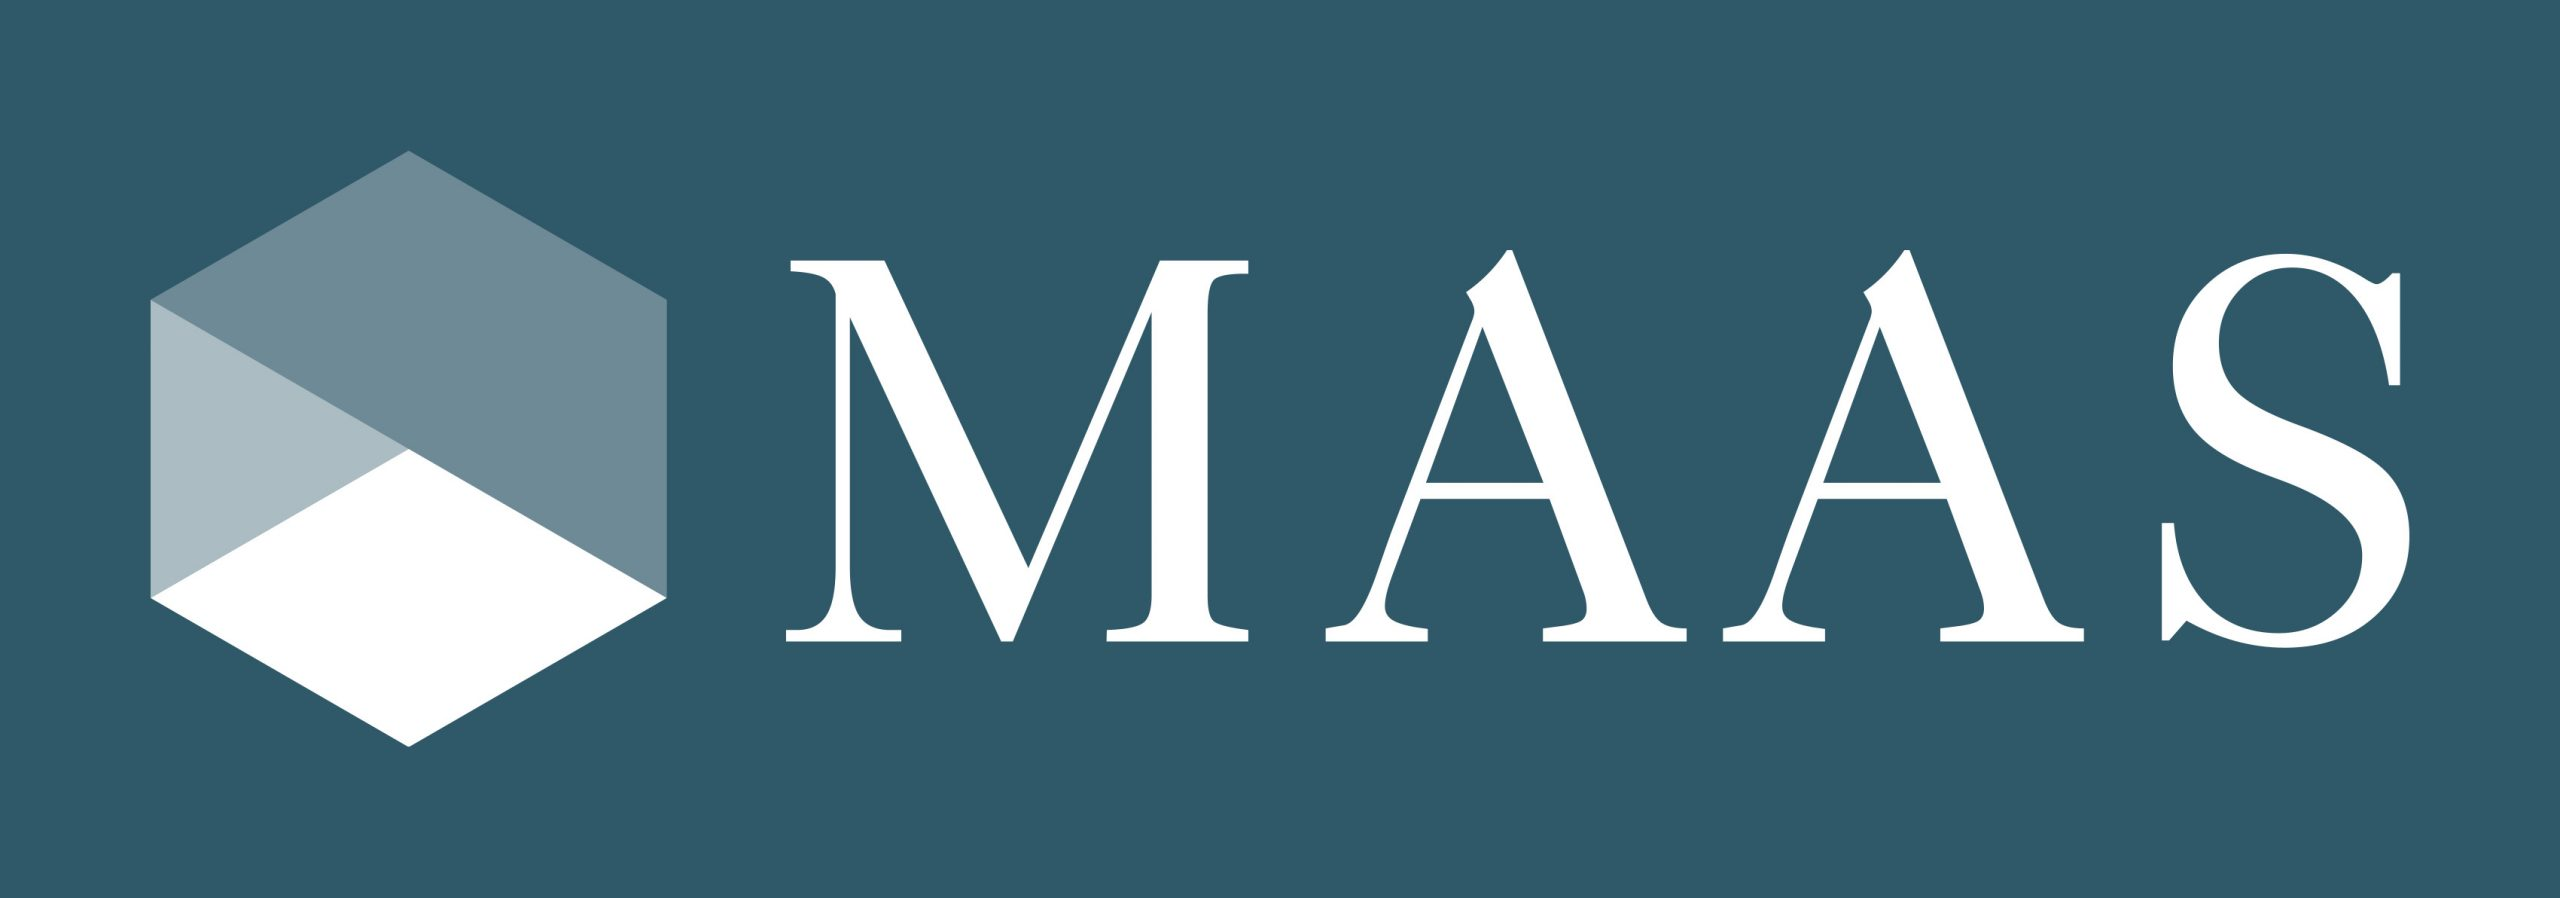 Logo of Maas on a green background